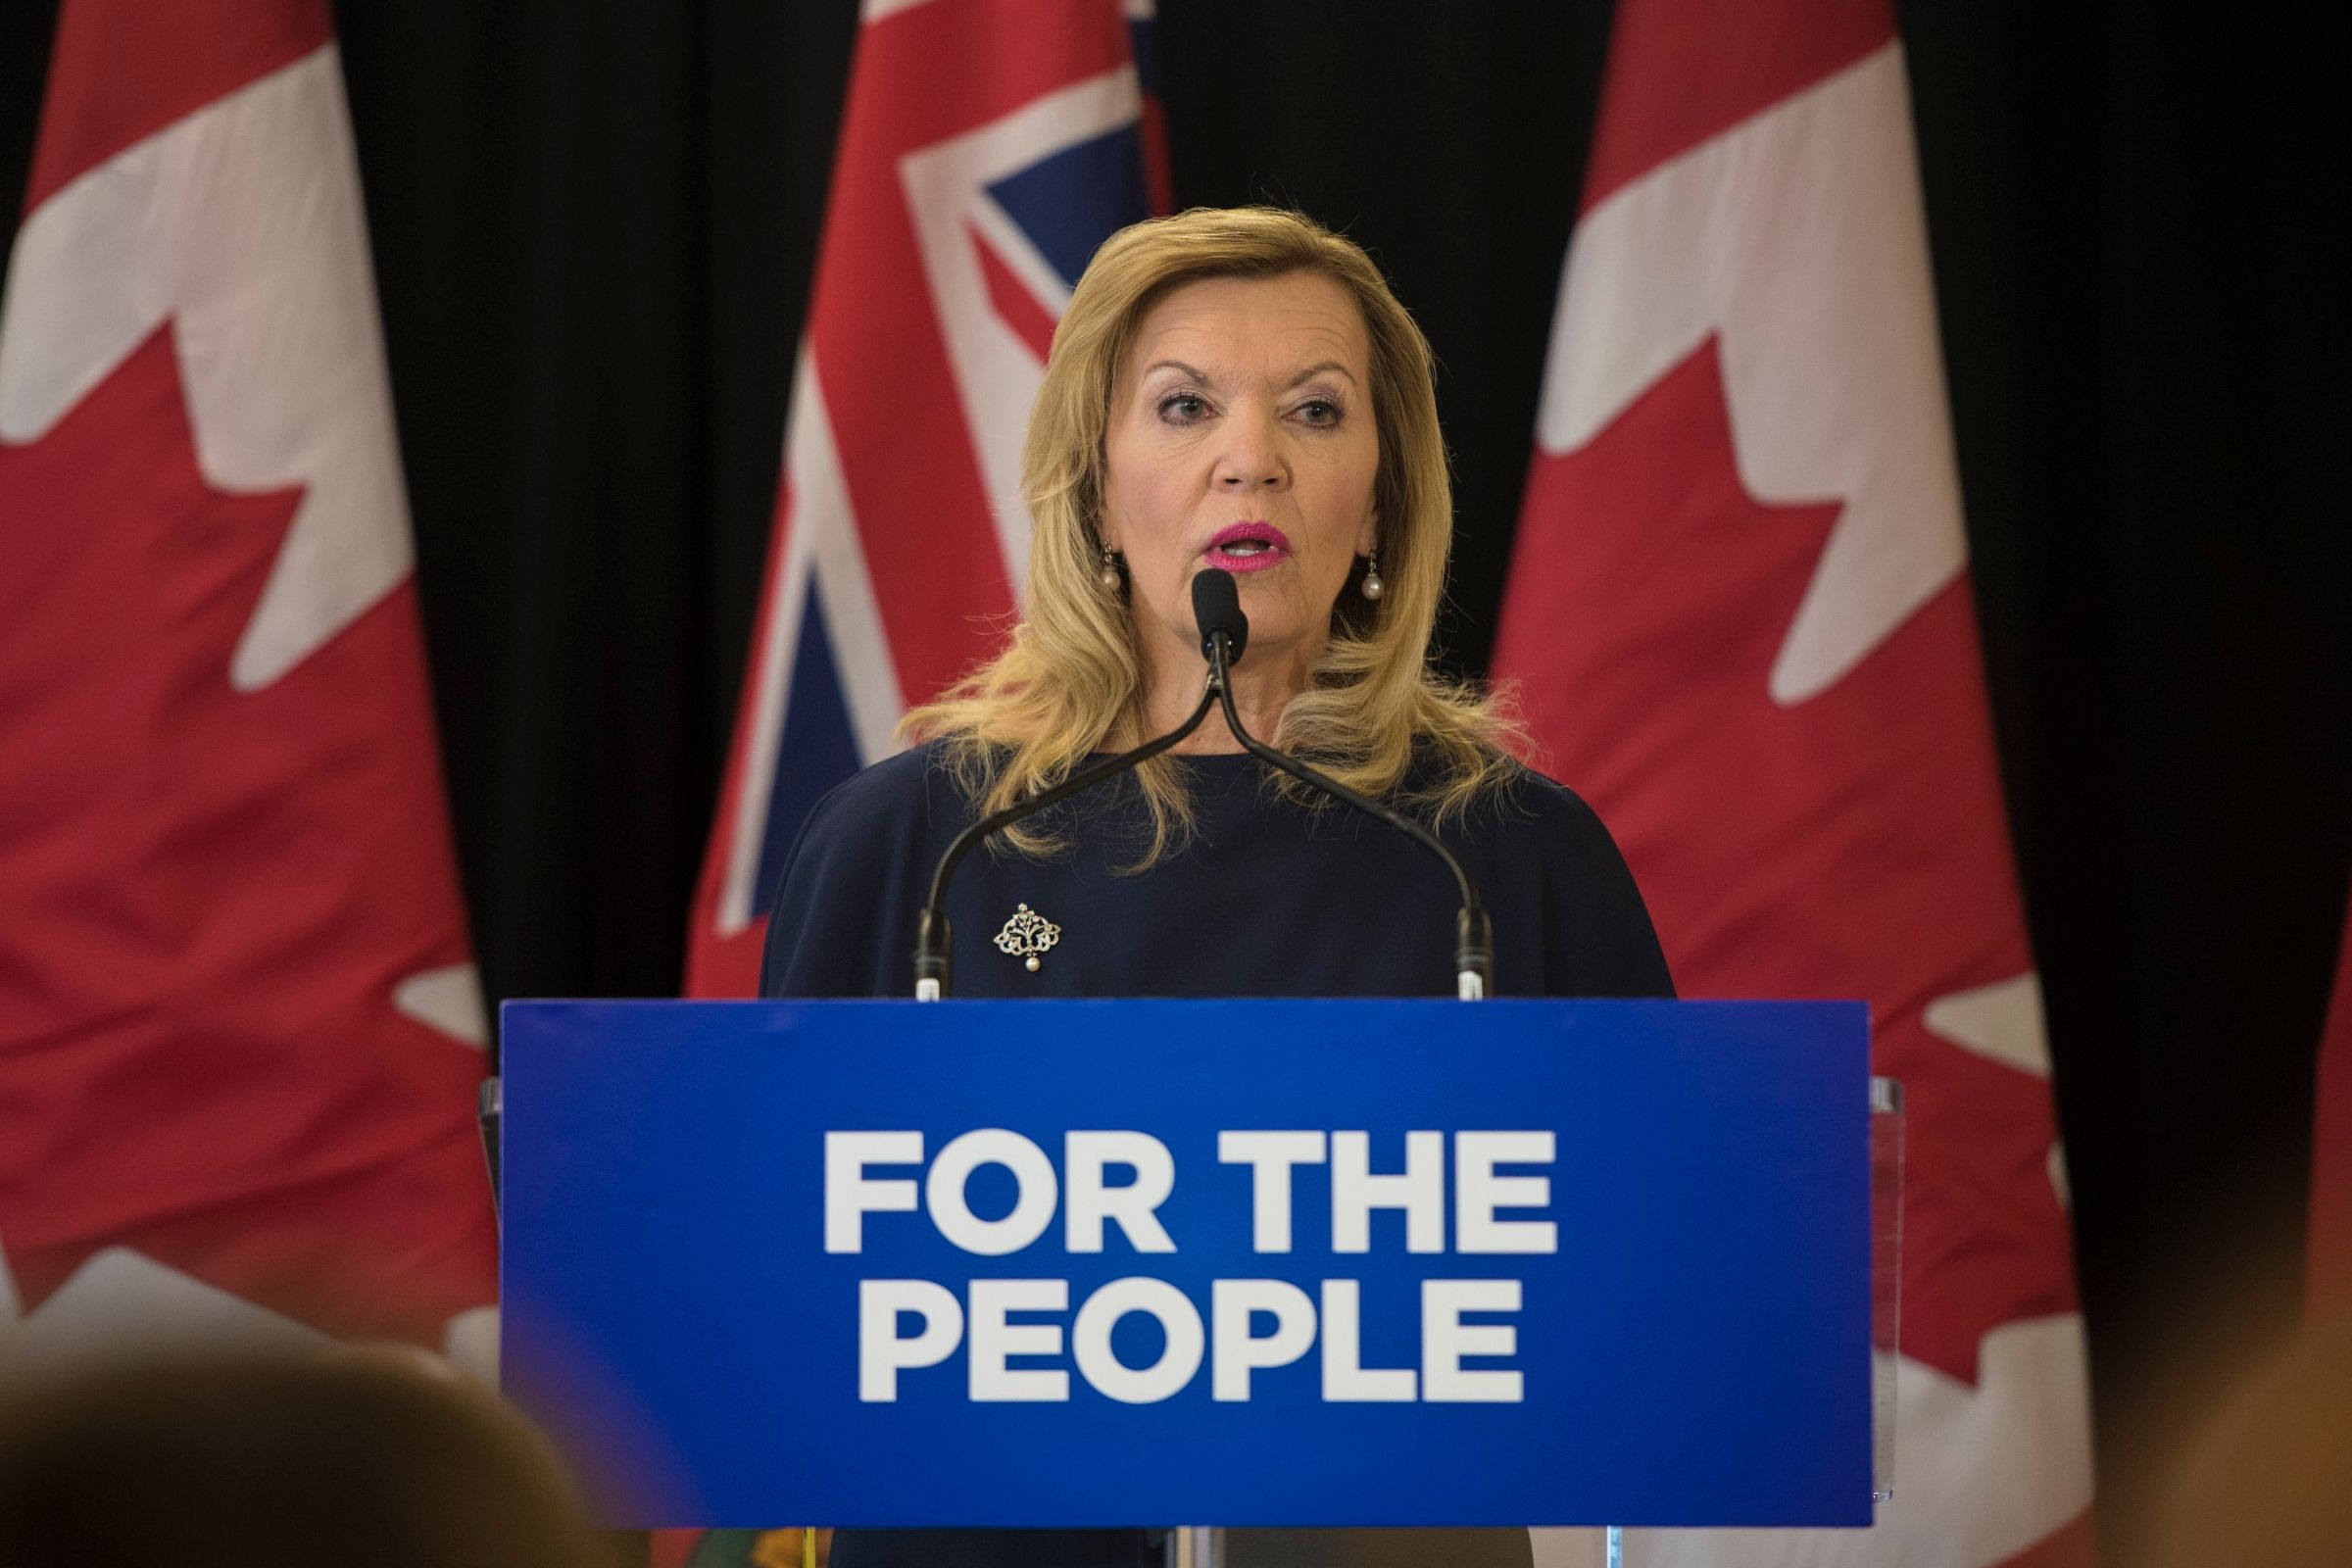 Ten former ministers urge Ontario government to reverse cuts to public-health funding